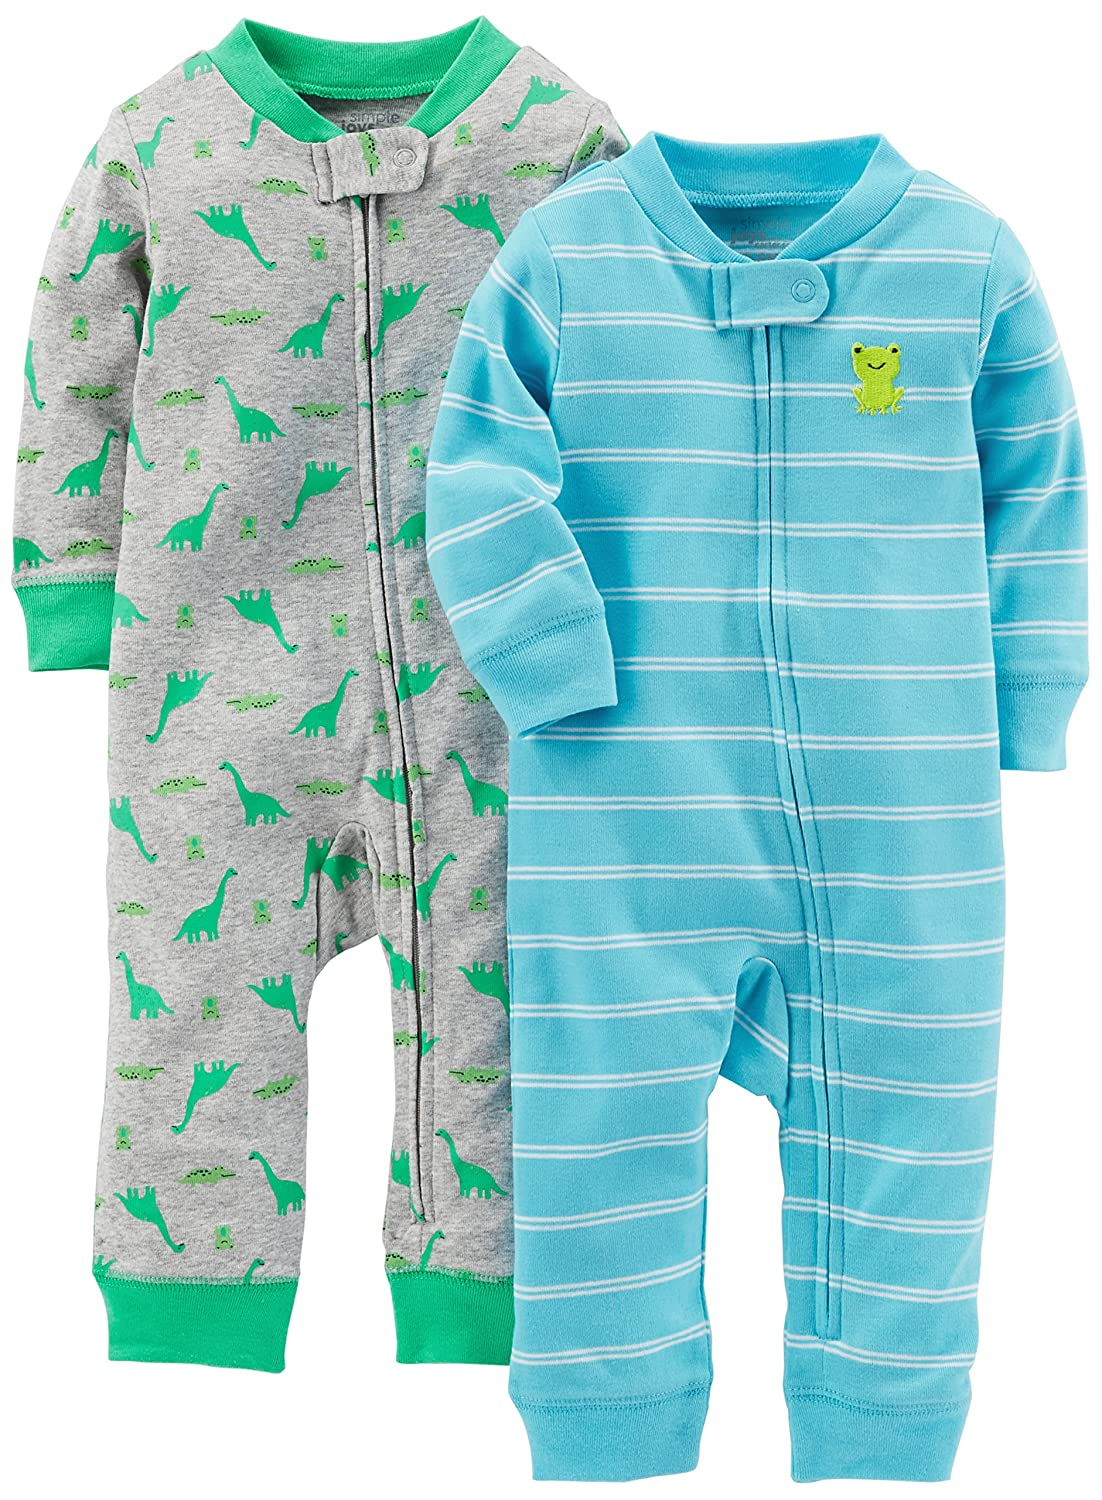 Simple Joys by Carters Baby Boys 2-Pack Cotton Footless Sleep and Play